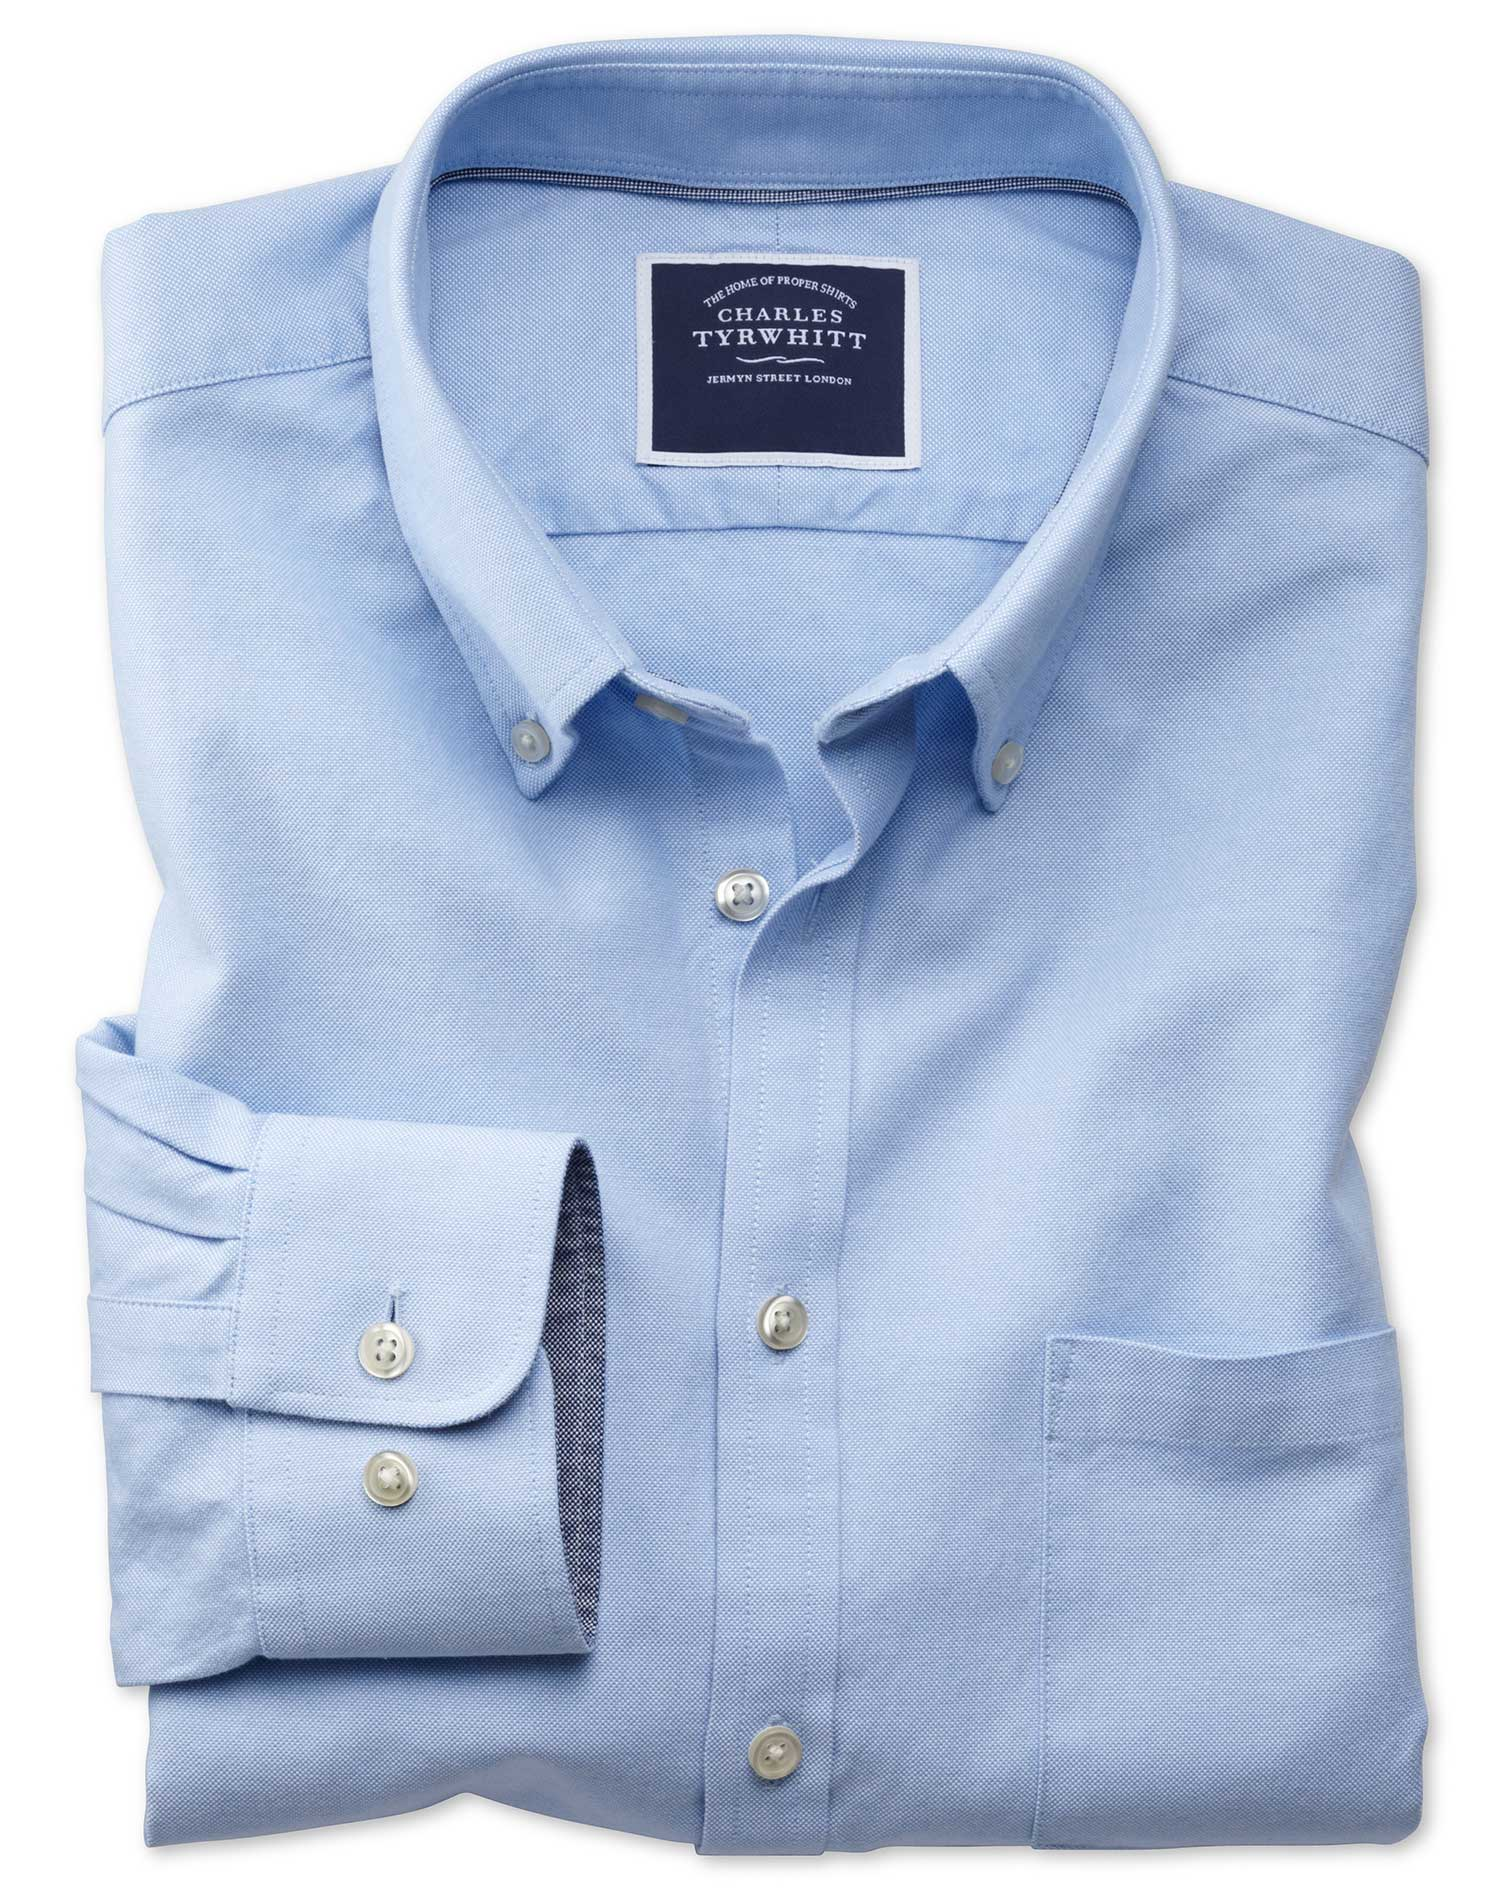 classic fit sky blue washed oxford cotton casual shirt single cuff size xxxl by charles tyrwhitt